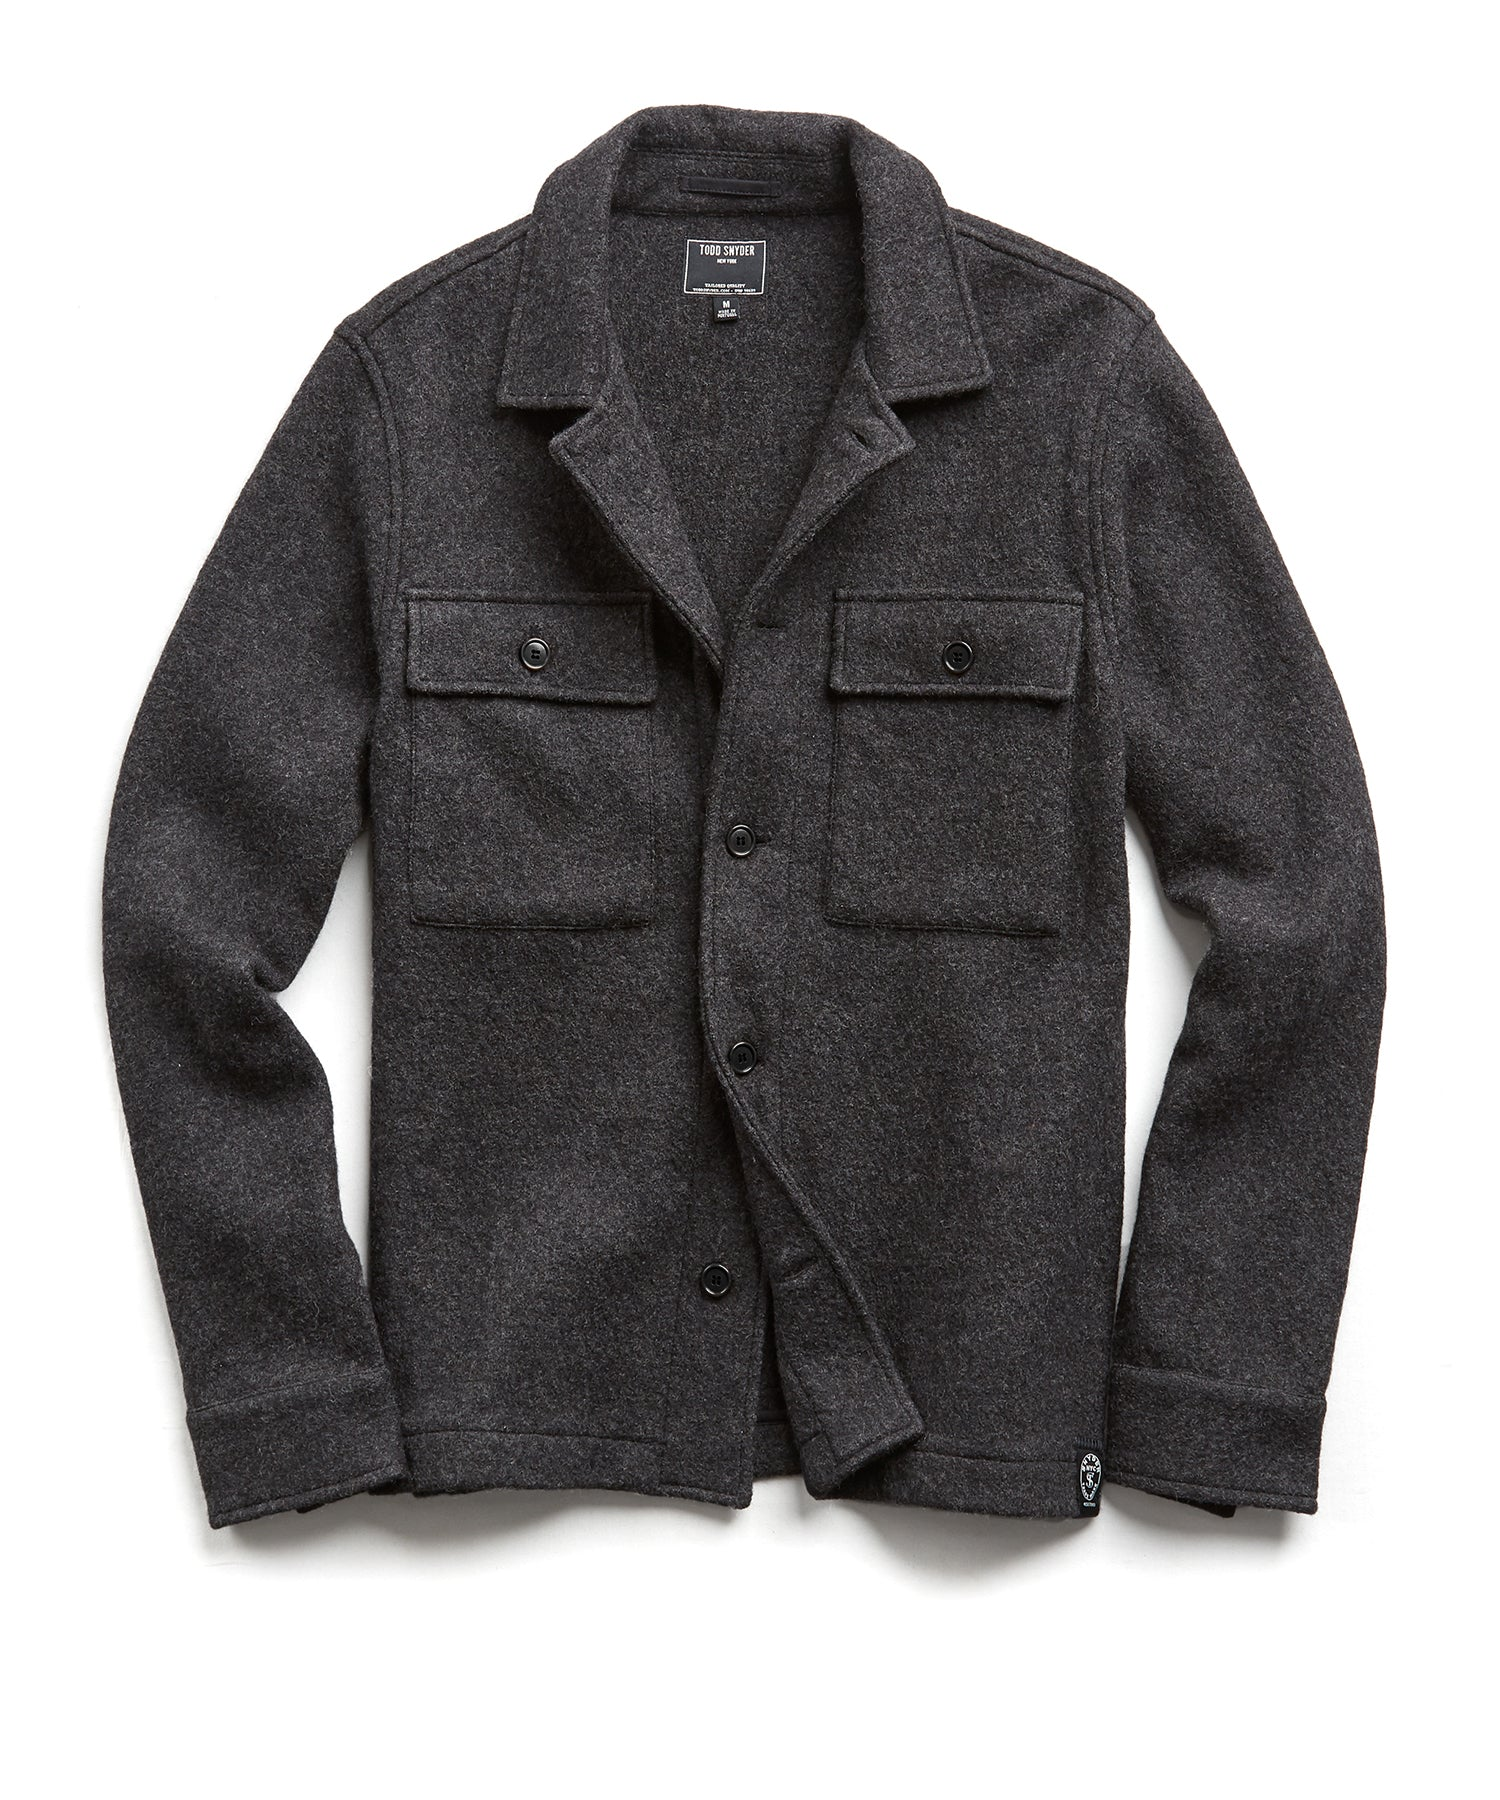 Italian Boucle Knit Shirt Jacket in Charcoal